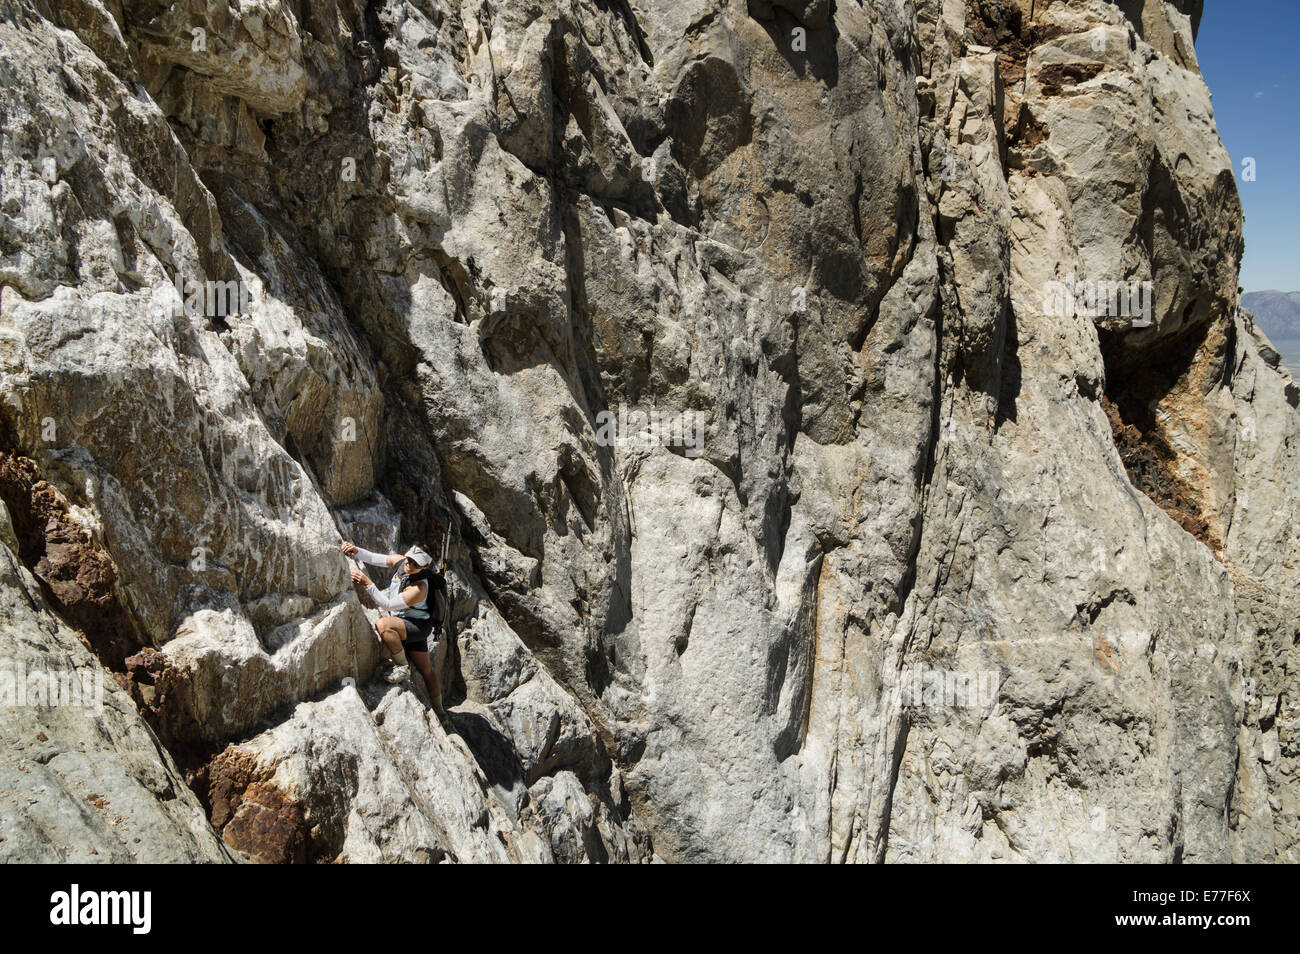 woman climbing up a steep mountain face without a rope - Stock Image